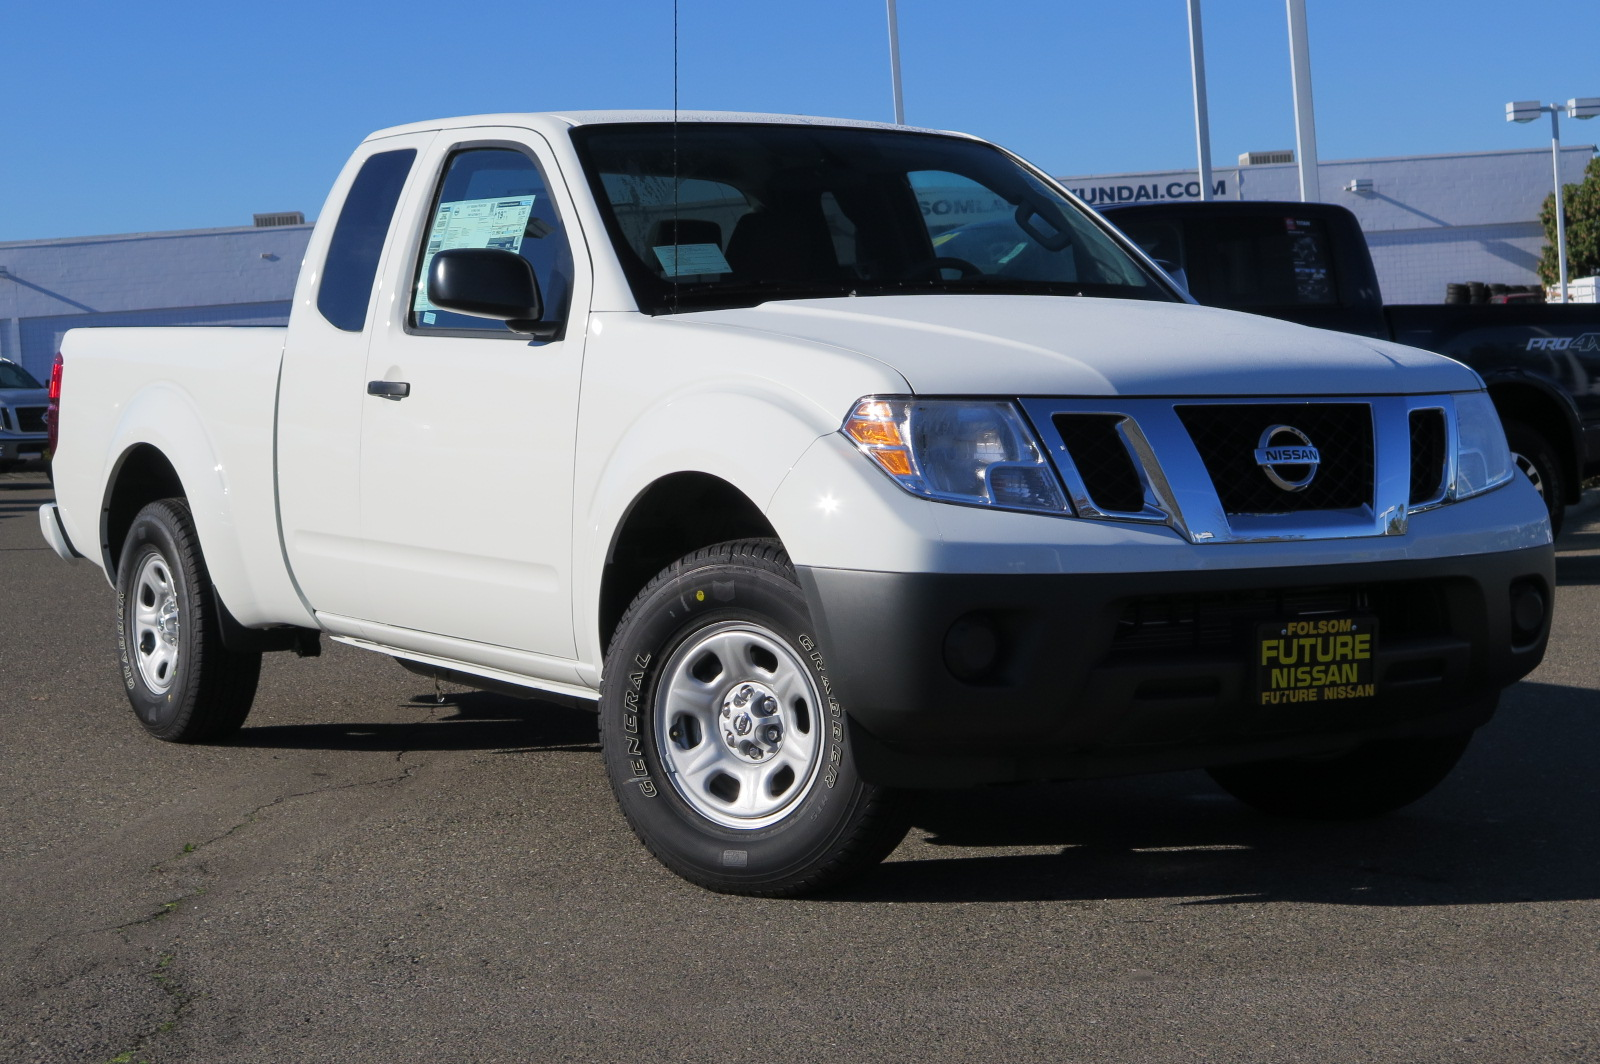 new 2017 nissan frontier s truck king cab in roseville f10700 future nissan of roseville. Black Bedroom Furniture Sets. Home Design Ideas